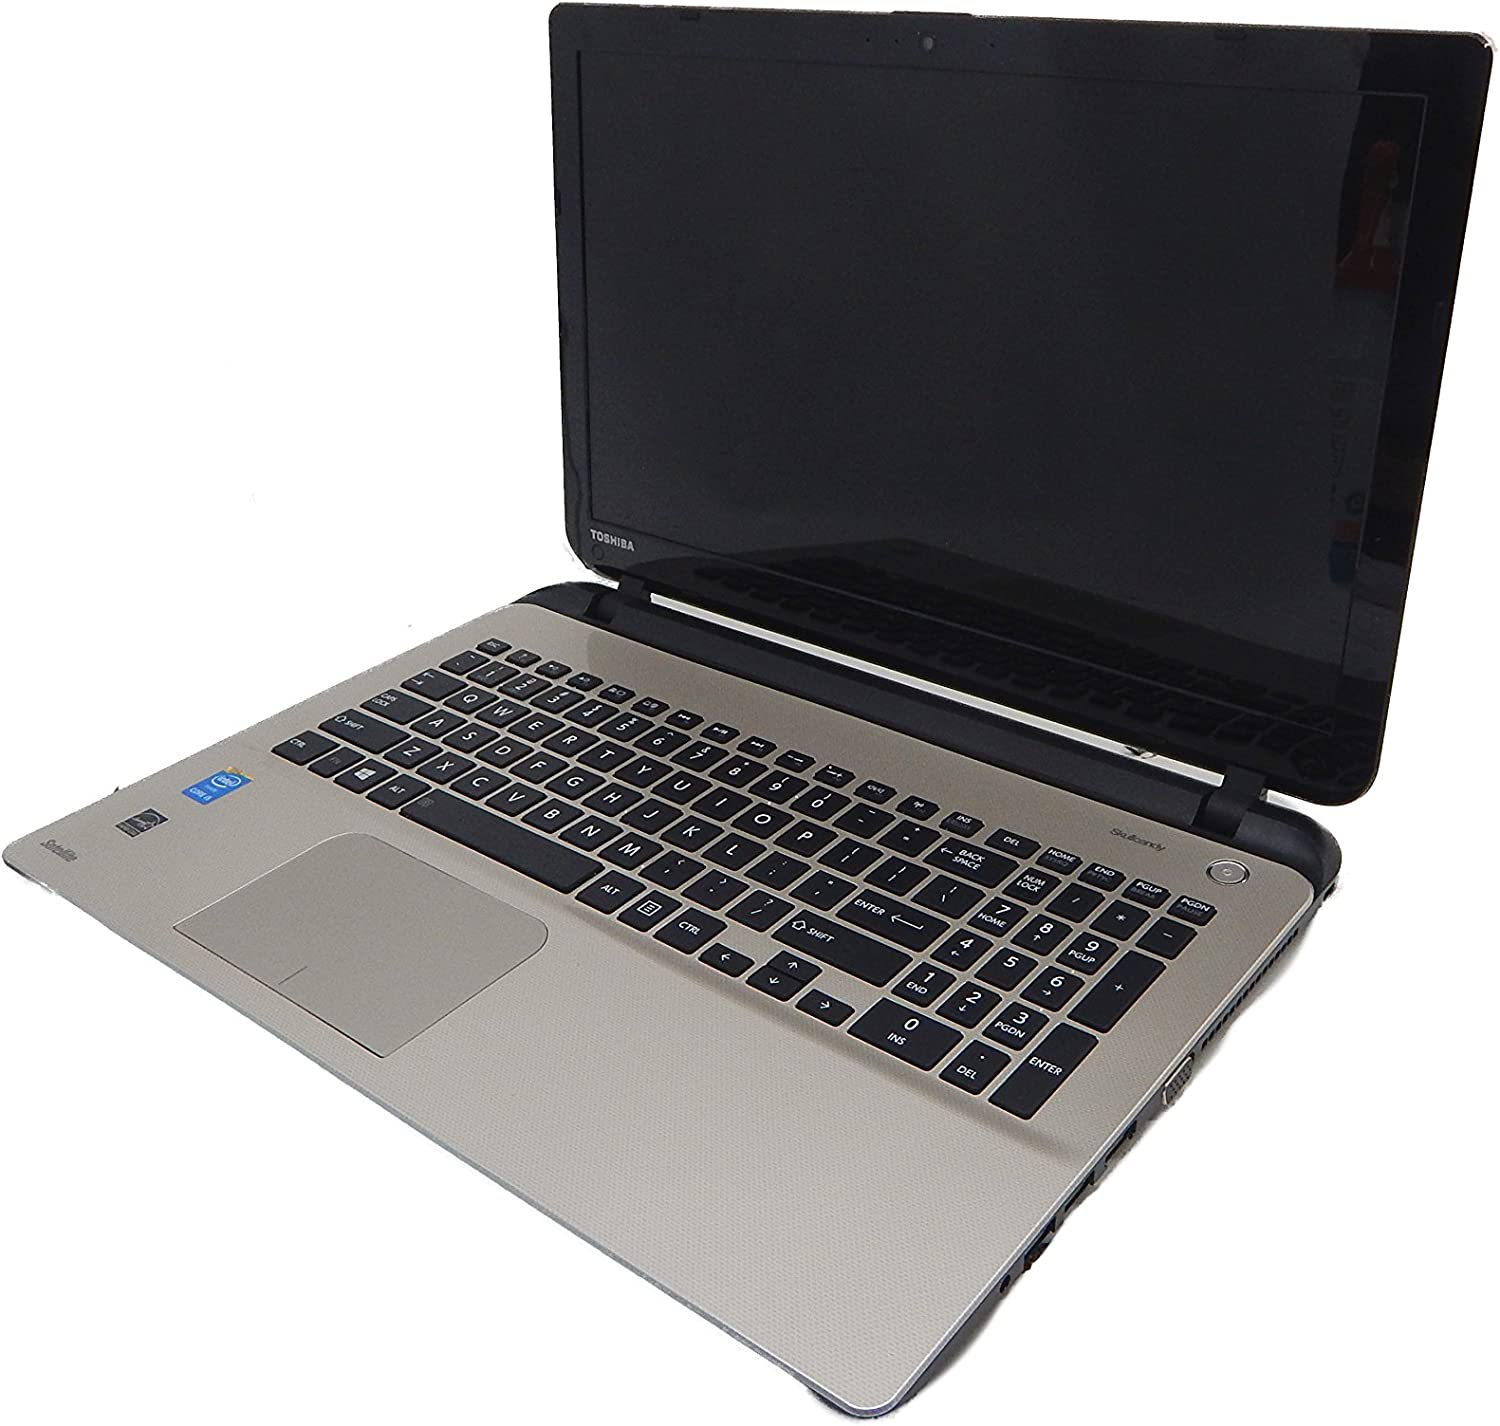 Toshiba Satellite L55-B5276 15.6 Inch Laptop (Intel Core i5-4210U, 8GB RAM, 1TB Hard Drive,Windows 8.1) Gold